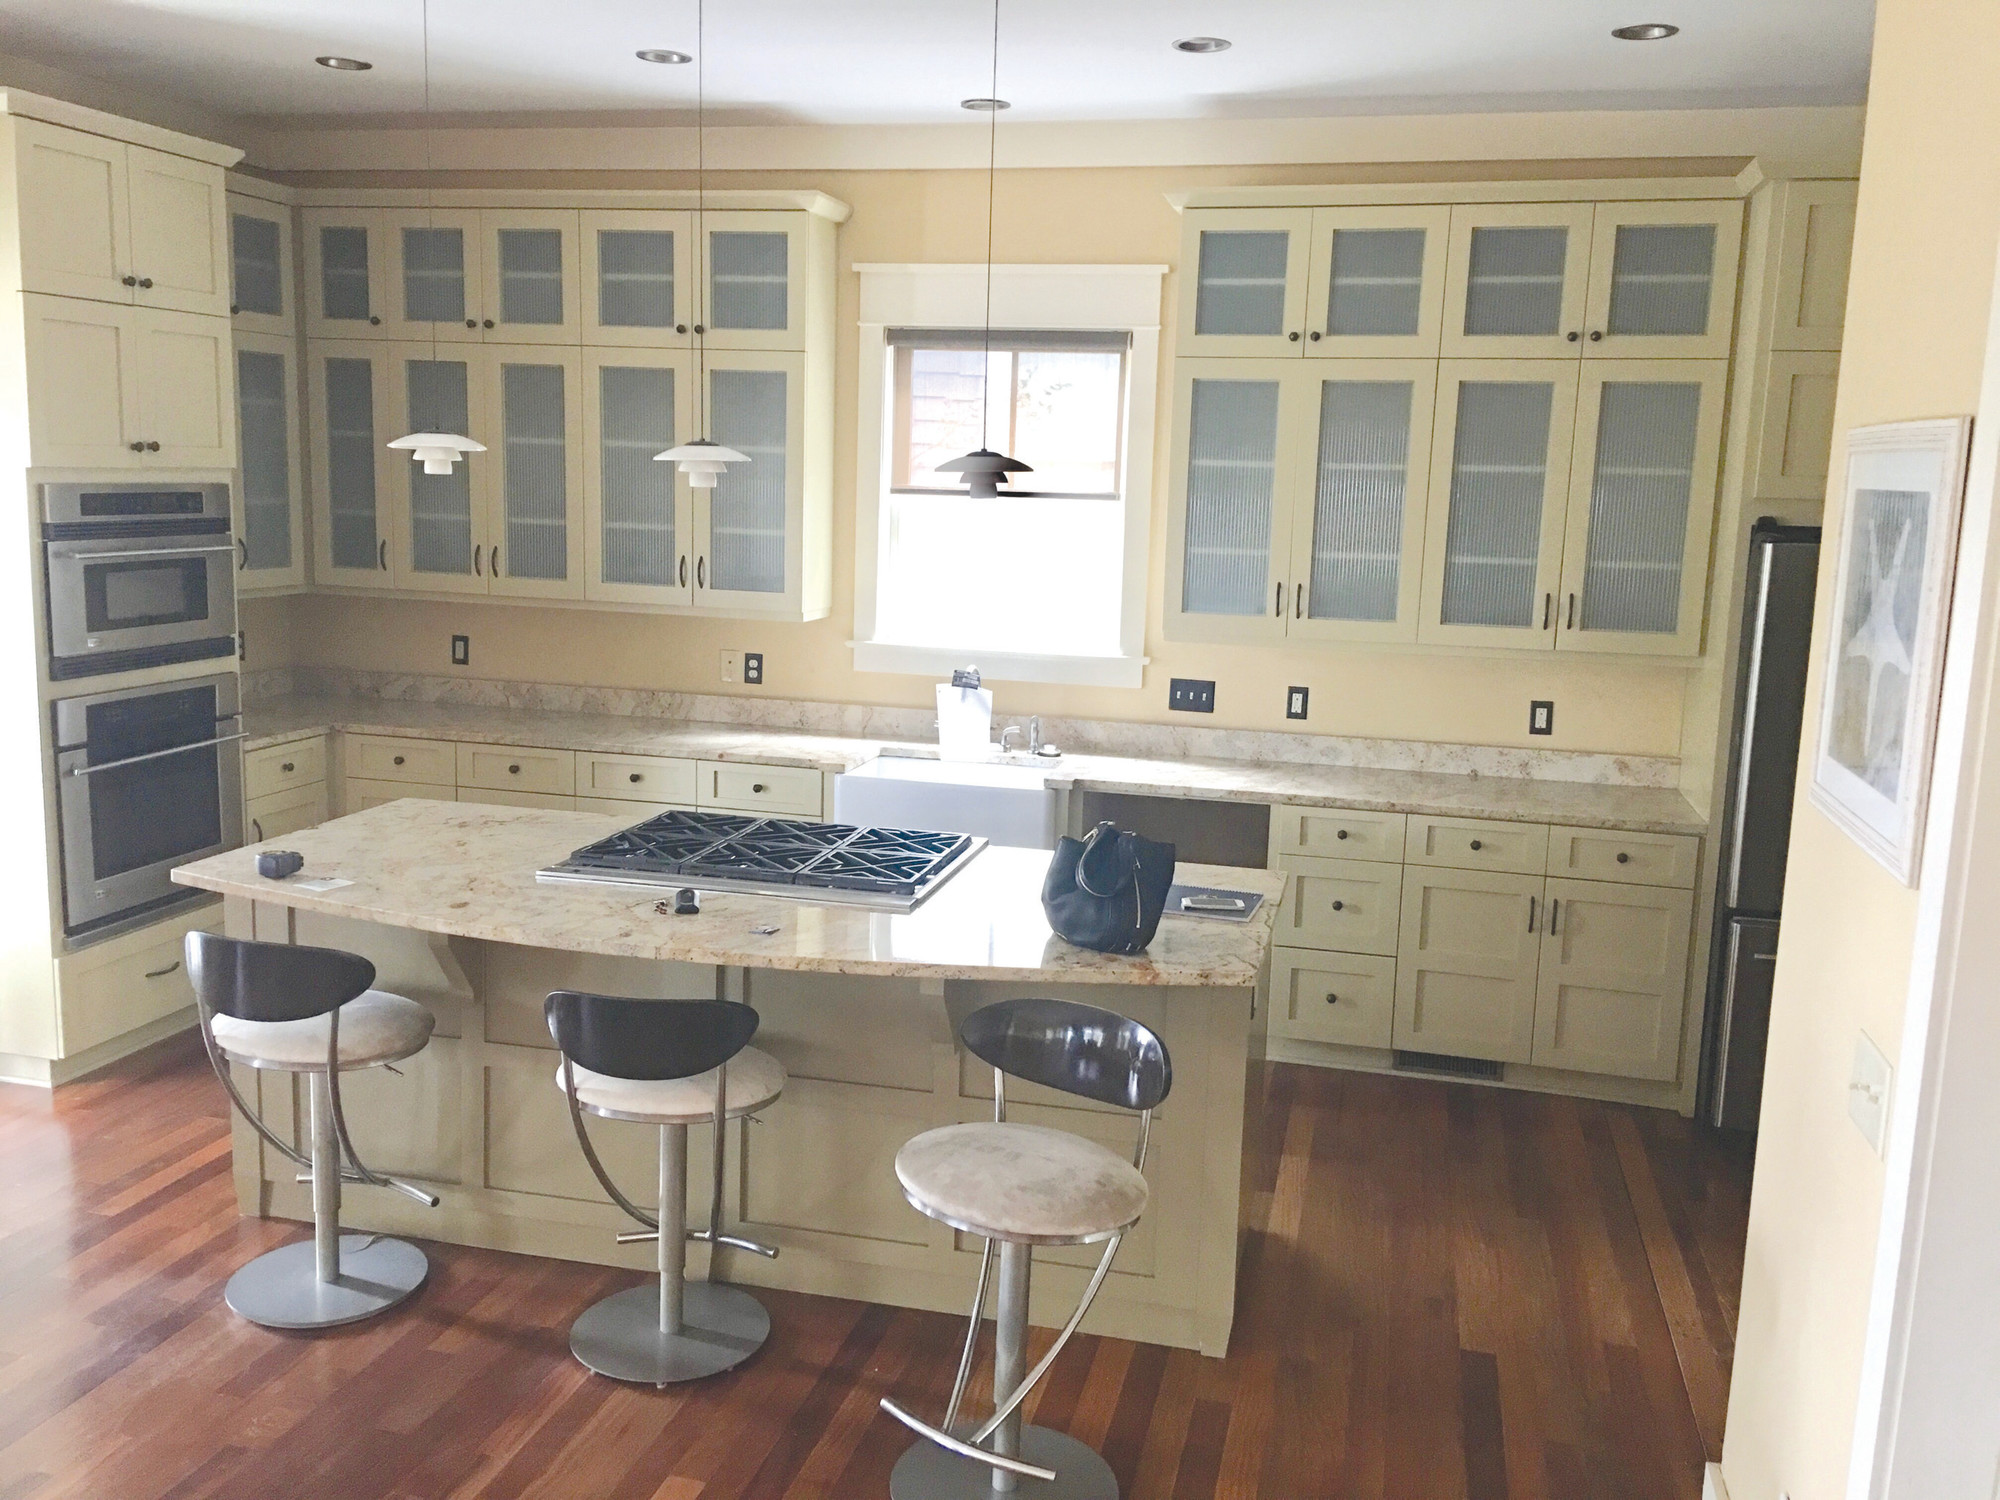 Neutrals Are Still Trending In Sumter For Kitchen Paint Color Schemes | The  Sumter Item